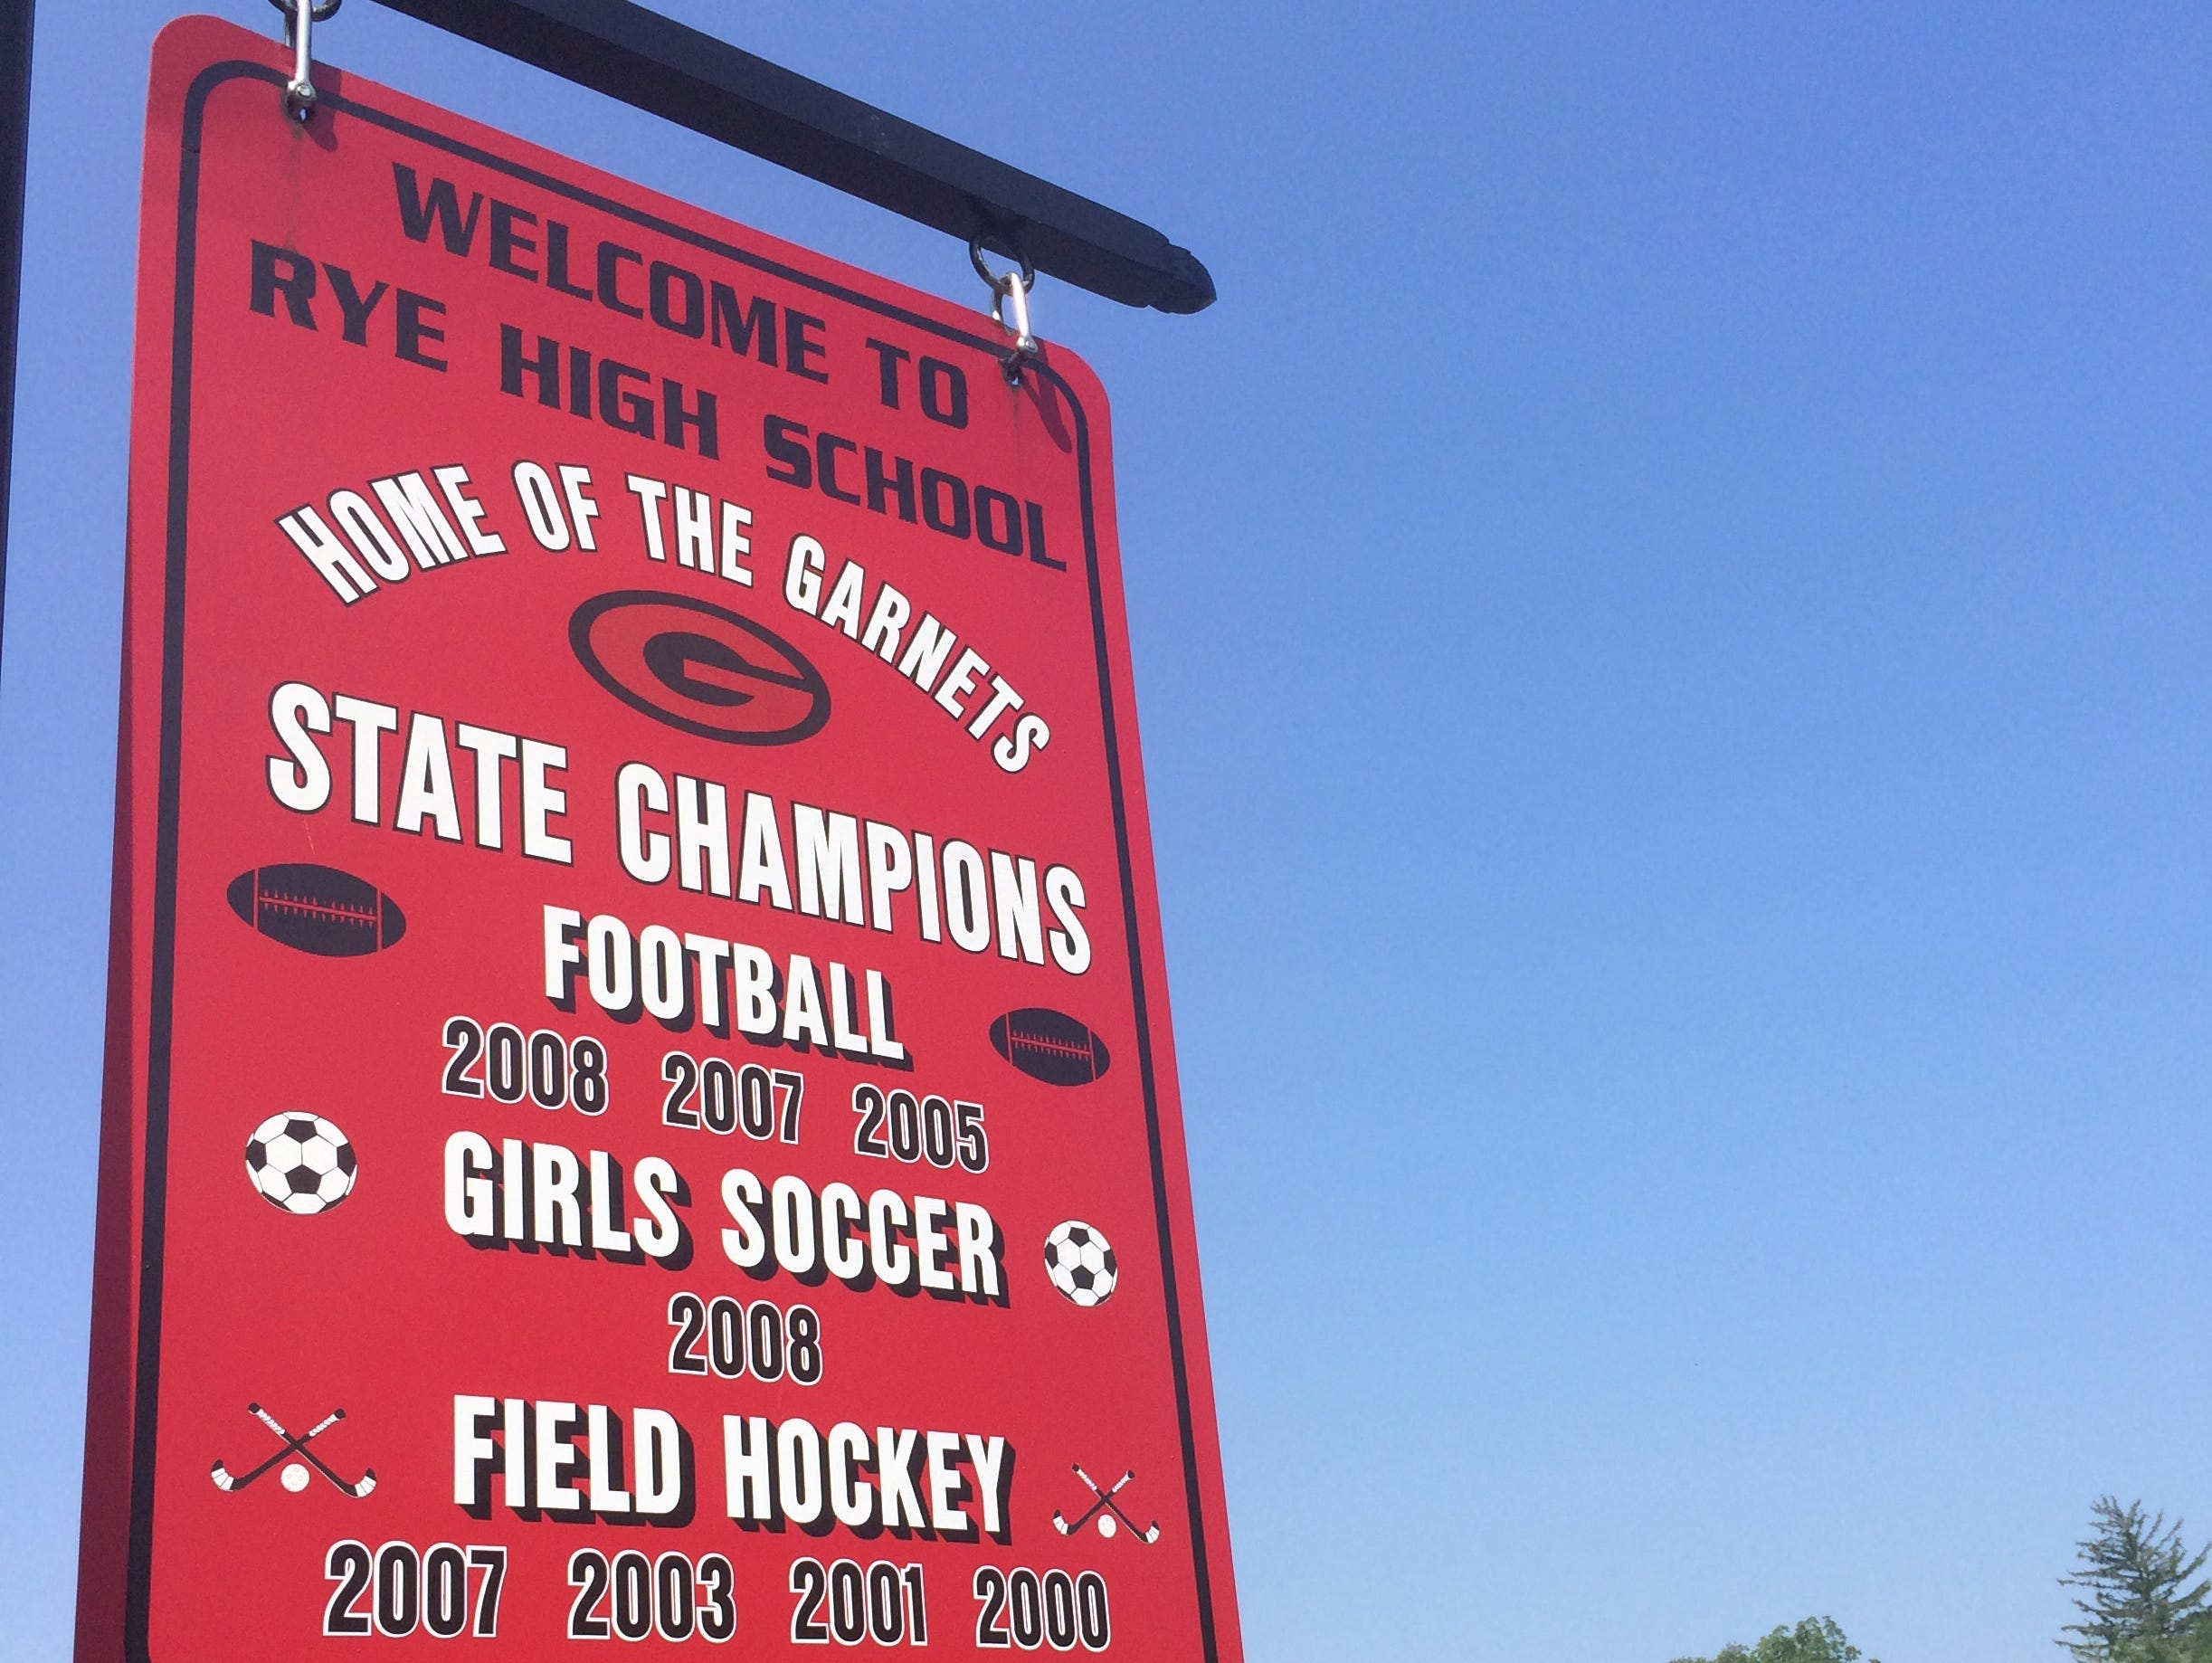 The Rye football team (background) holds its first football practice of the season at Rye High School's Nugent Stadium.